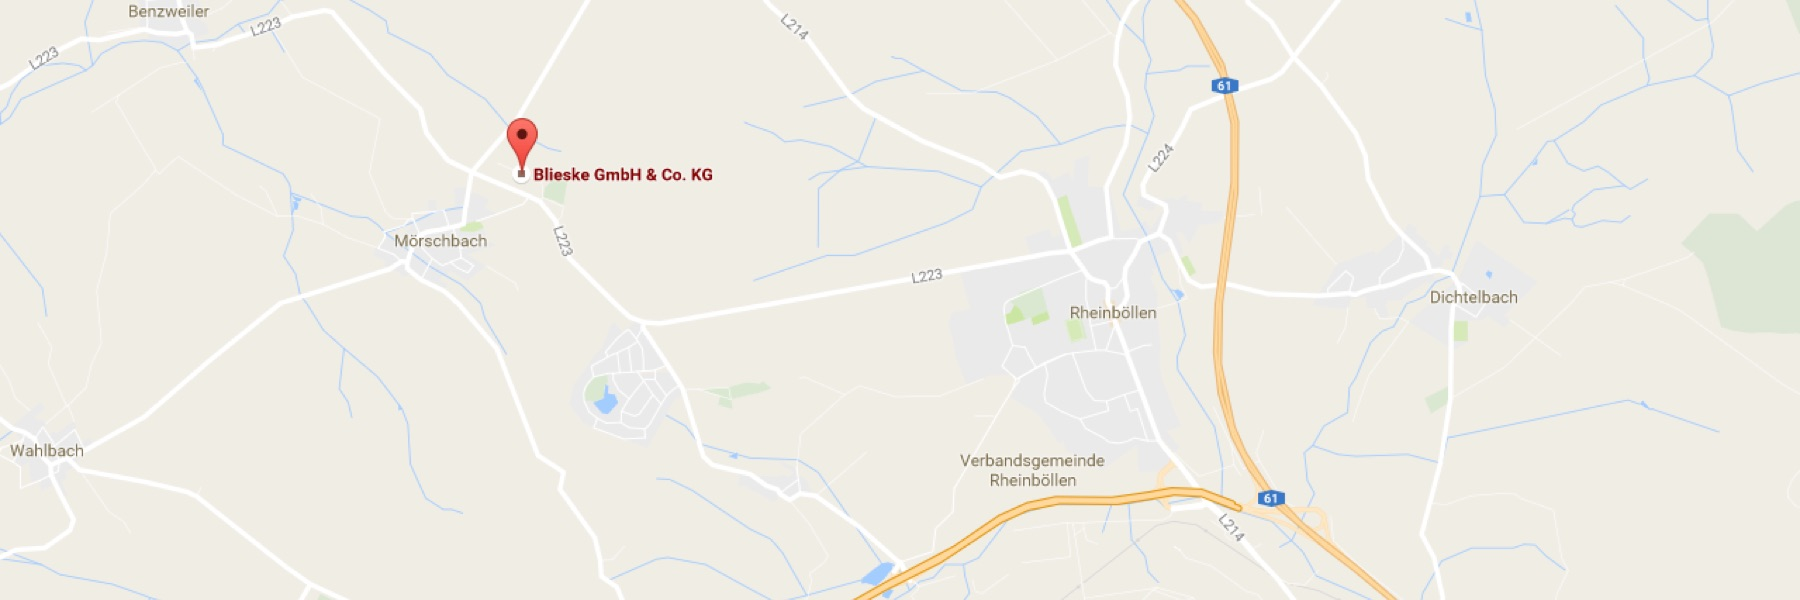 Blieske Spedition in Google Maps | Blieske Spedition